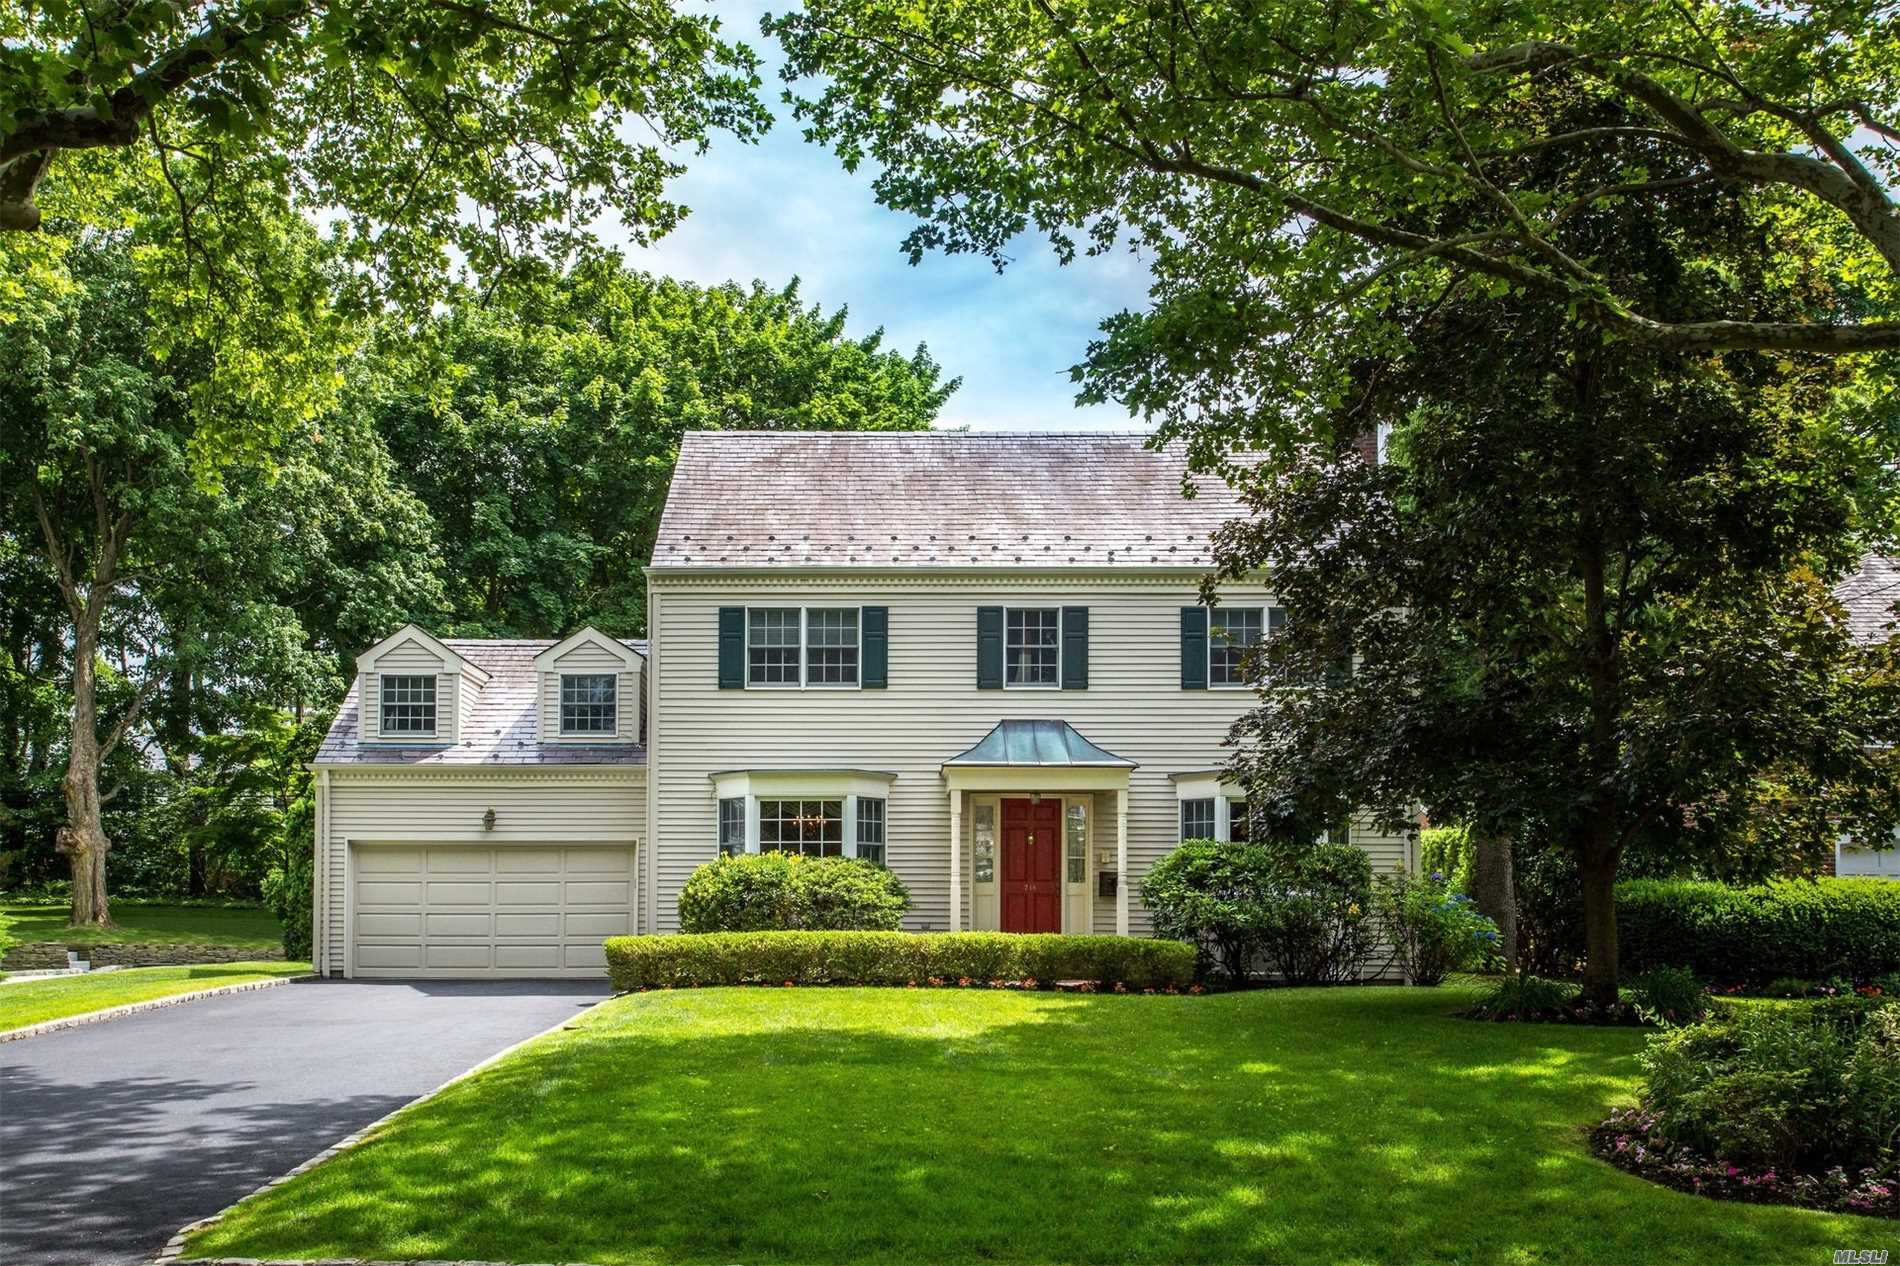 Photo of home for sale at 718 Park Ave, Manhasset NY